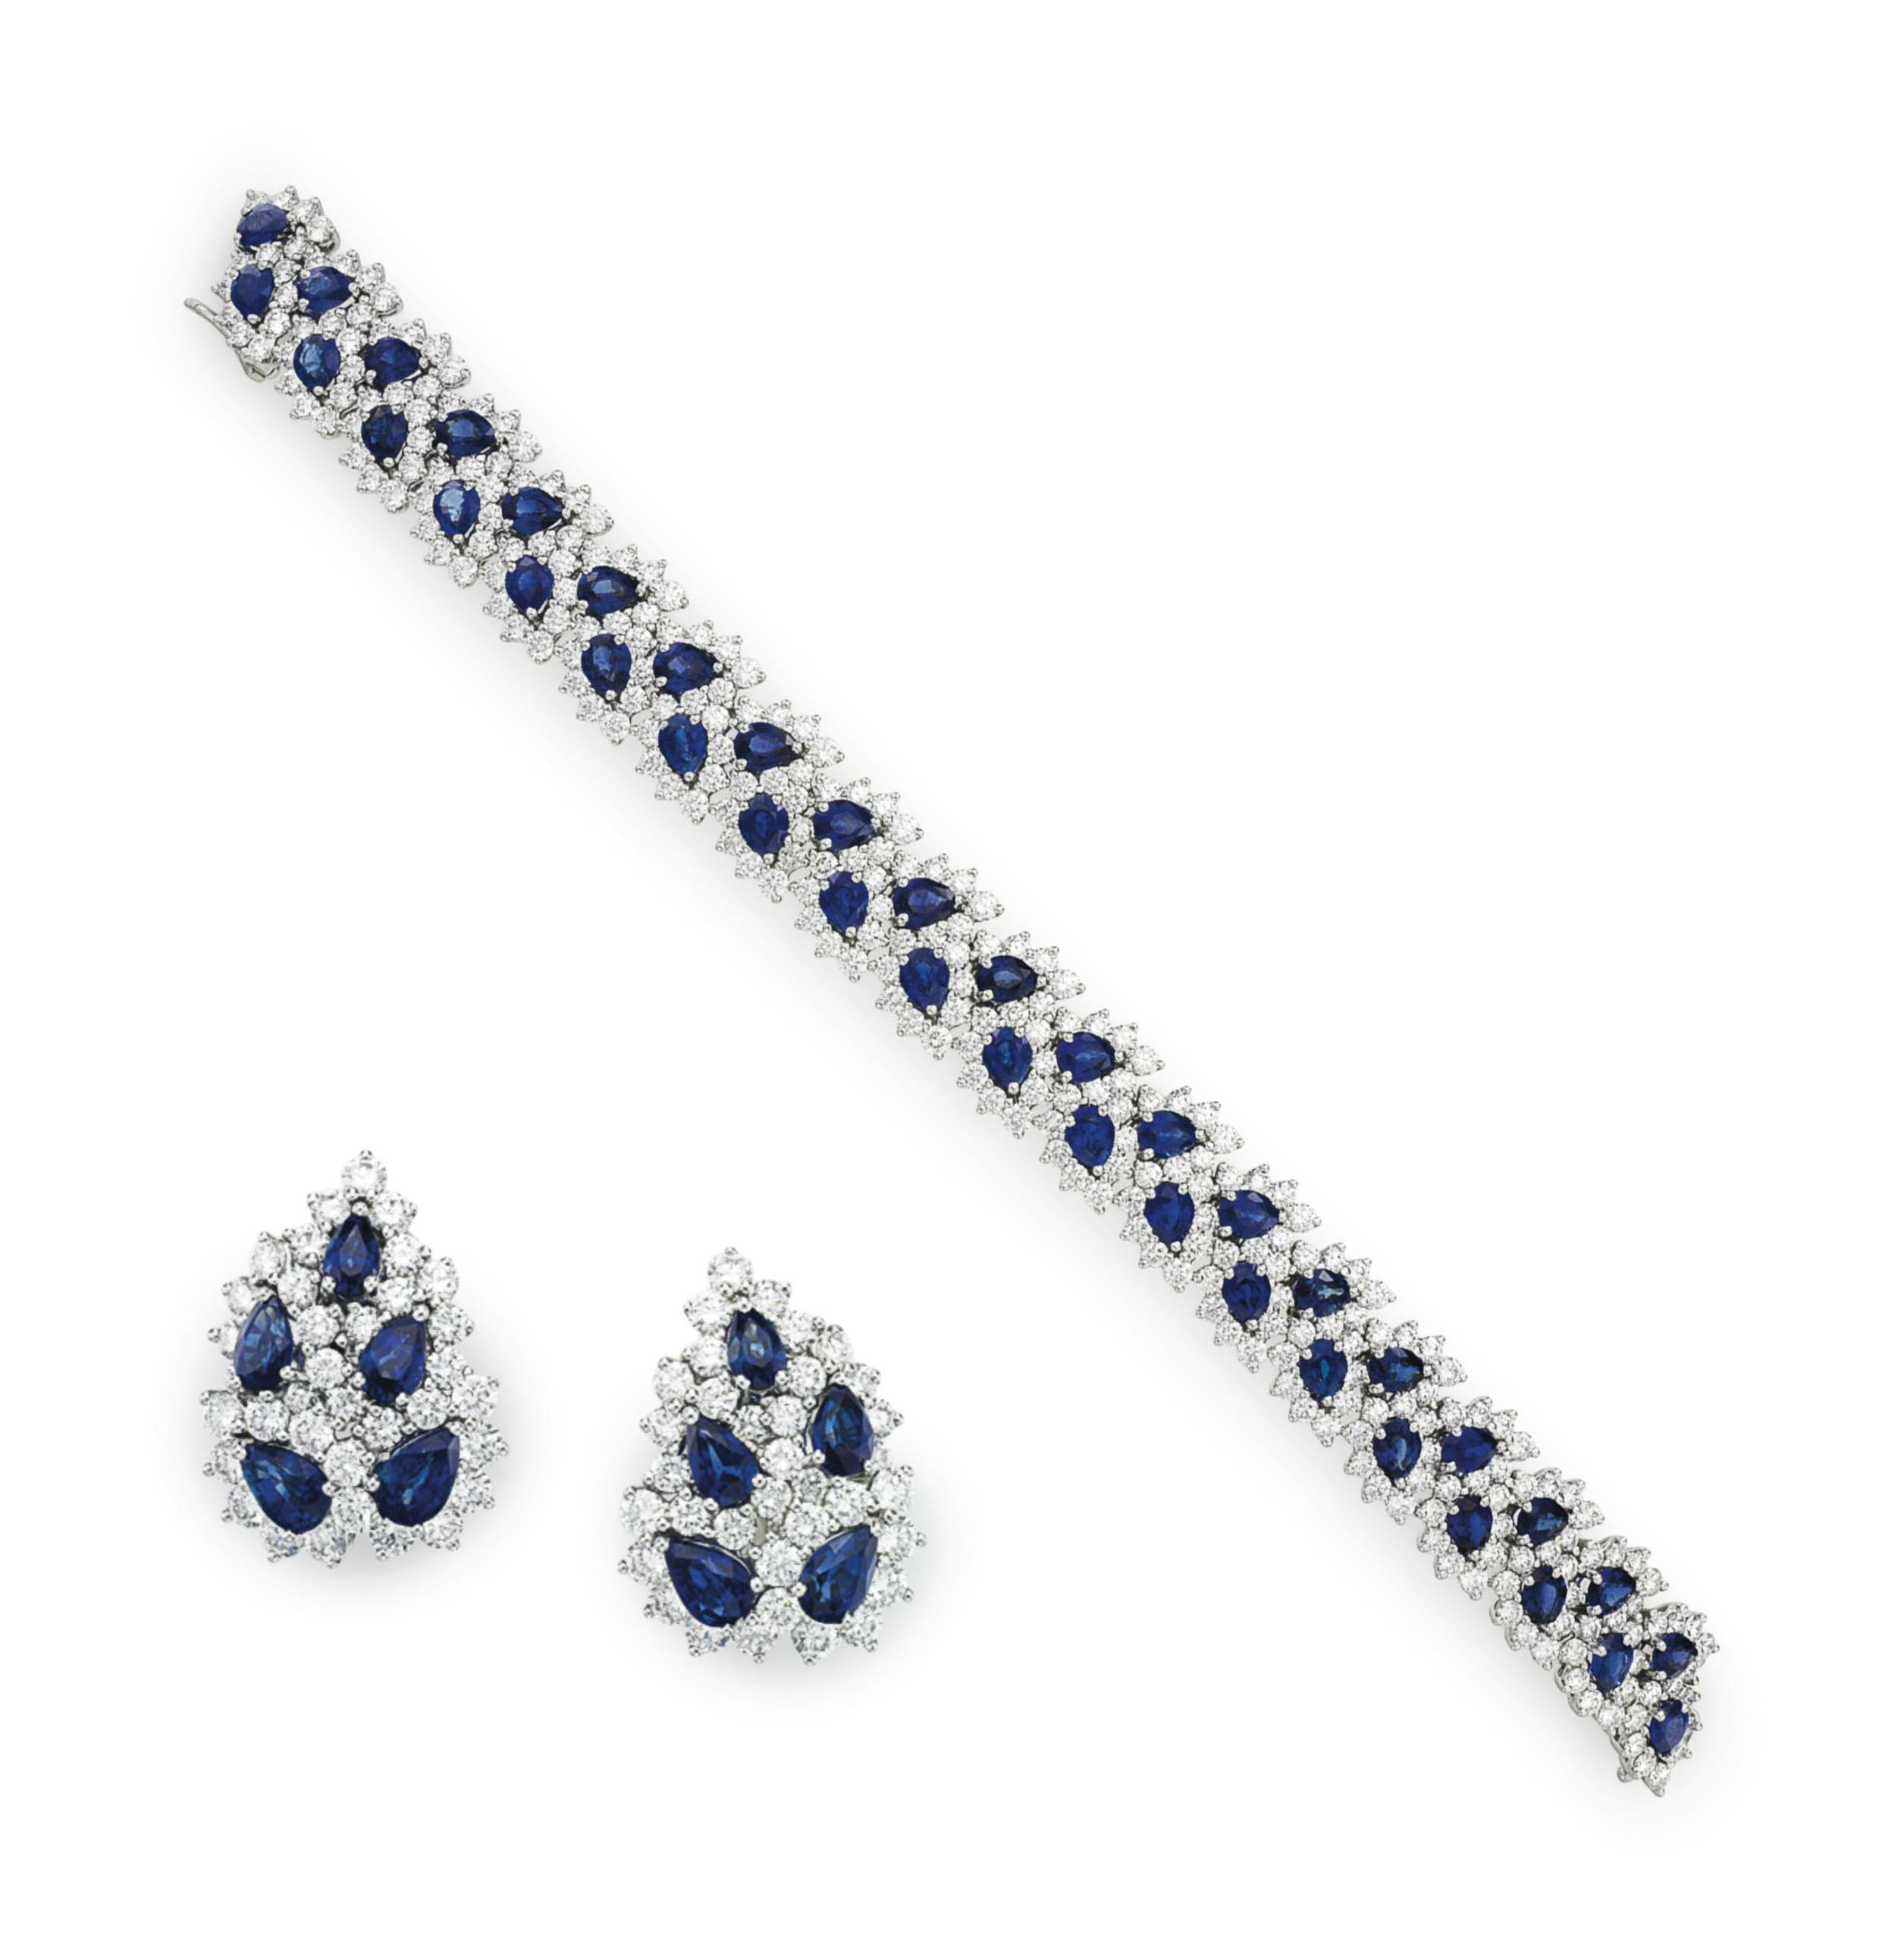 2875e006dbdfc A SET OF SAPPHIRE AND DIAMOND 'LEAF' JEWELRY, BY TIFFANY & CO ...